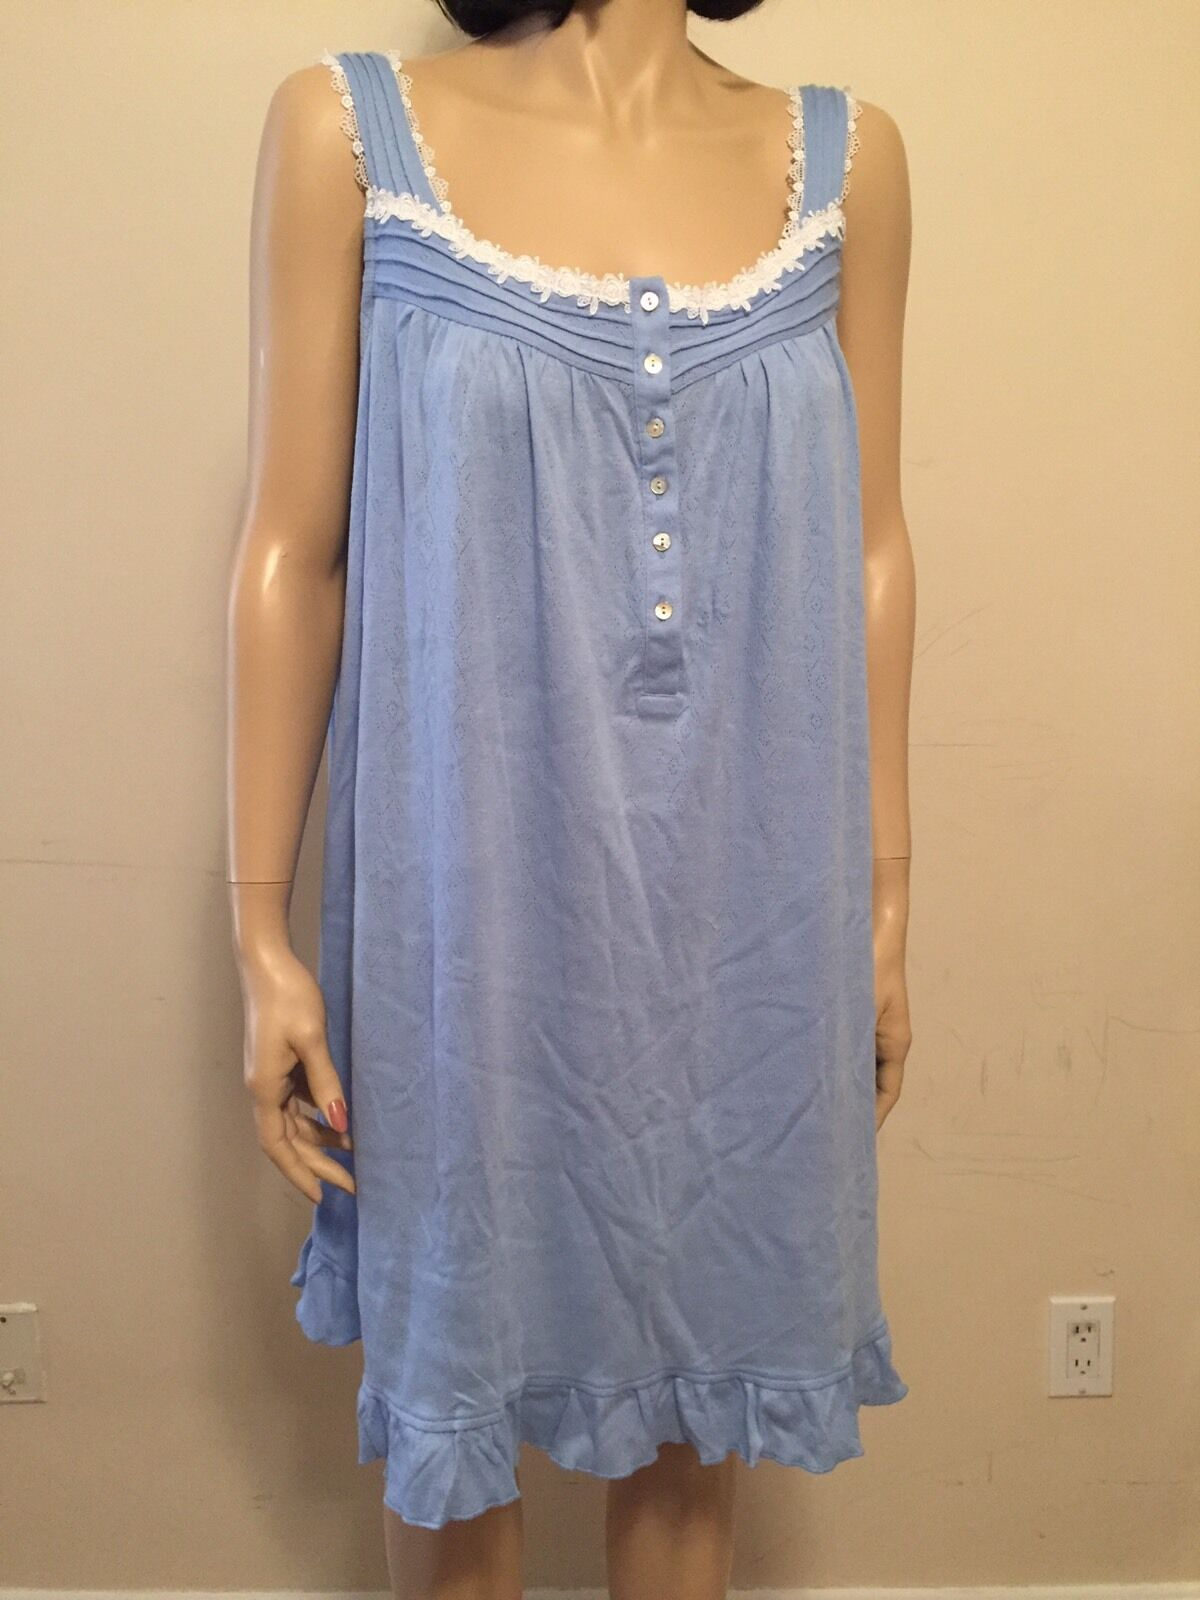 Eileen West Sleeveless Cotton Blend Nigh Gown Size L NWT